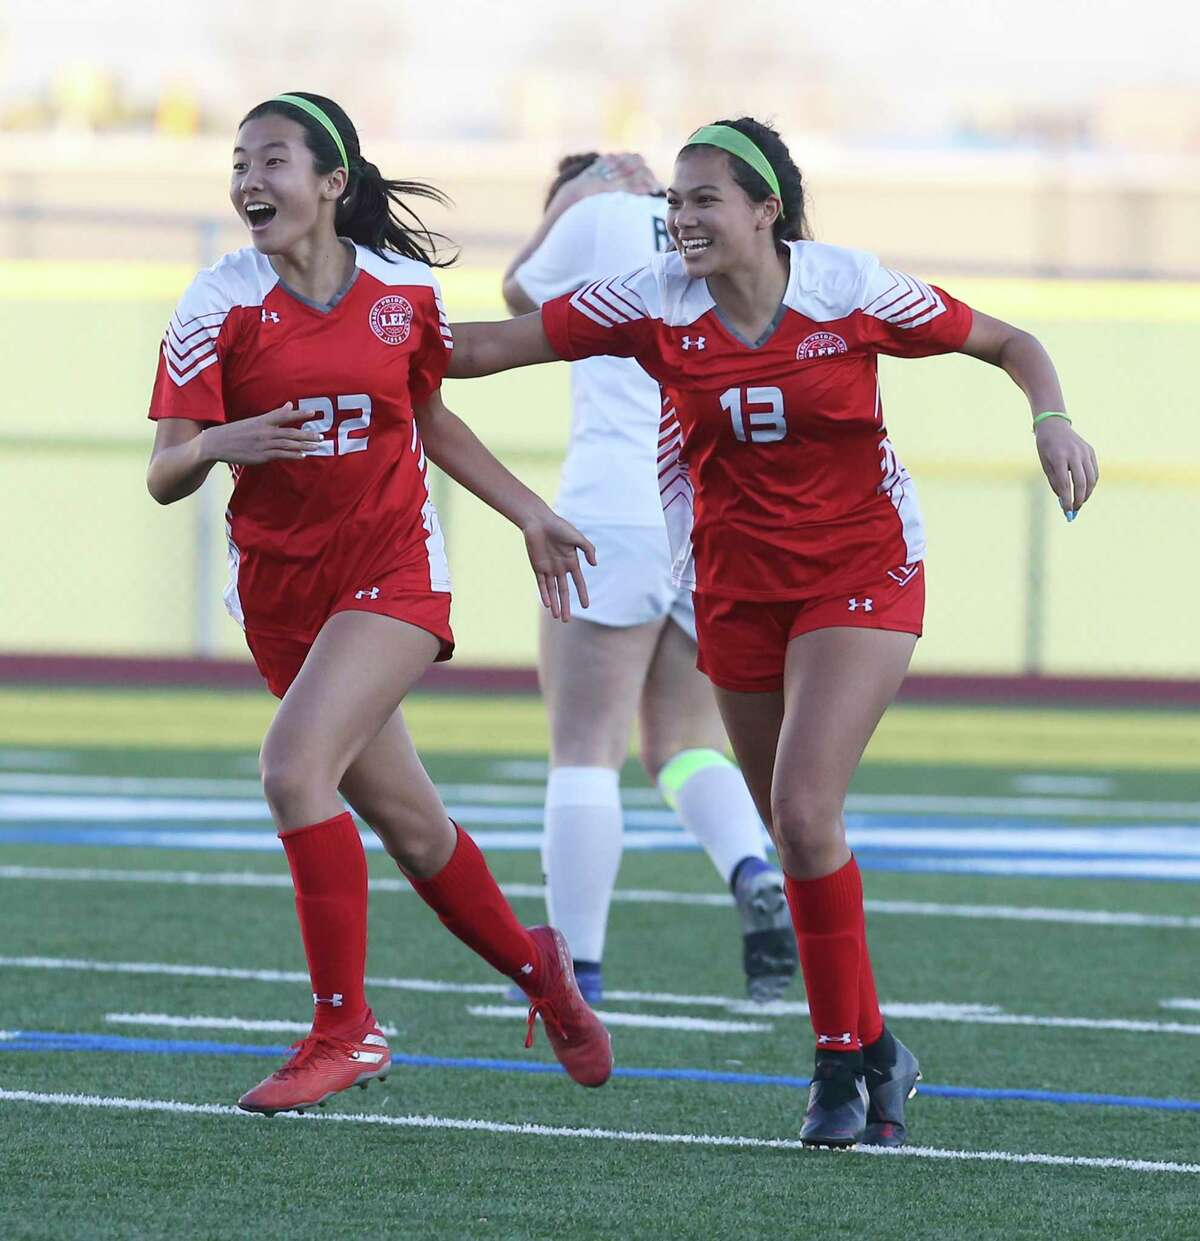 LEE's Kyleena Xin (22) celebrates with teammate Isela Zertuche (13) after Xin scores in the second half against Reagan during their girls soccer game at Commander Stadium on Wednesday, Feb. 12, 2020. LEE defeated Reagan, 1-0, on Xin's score.